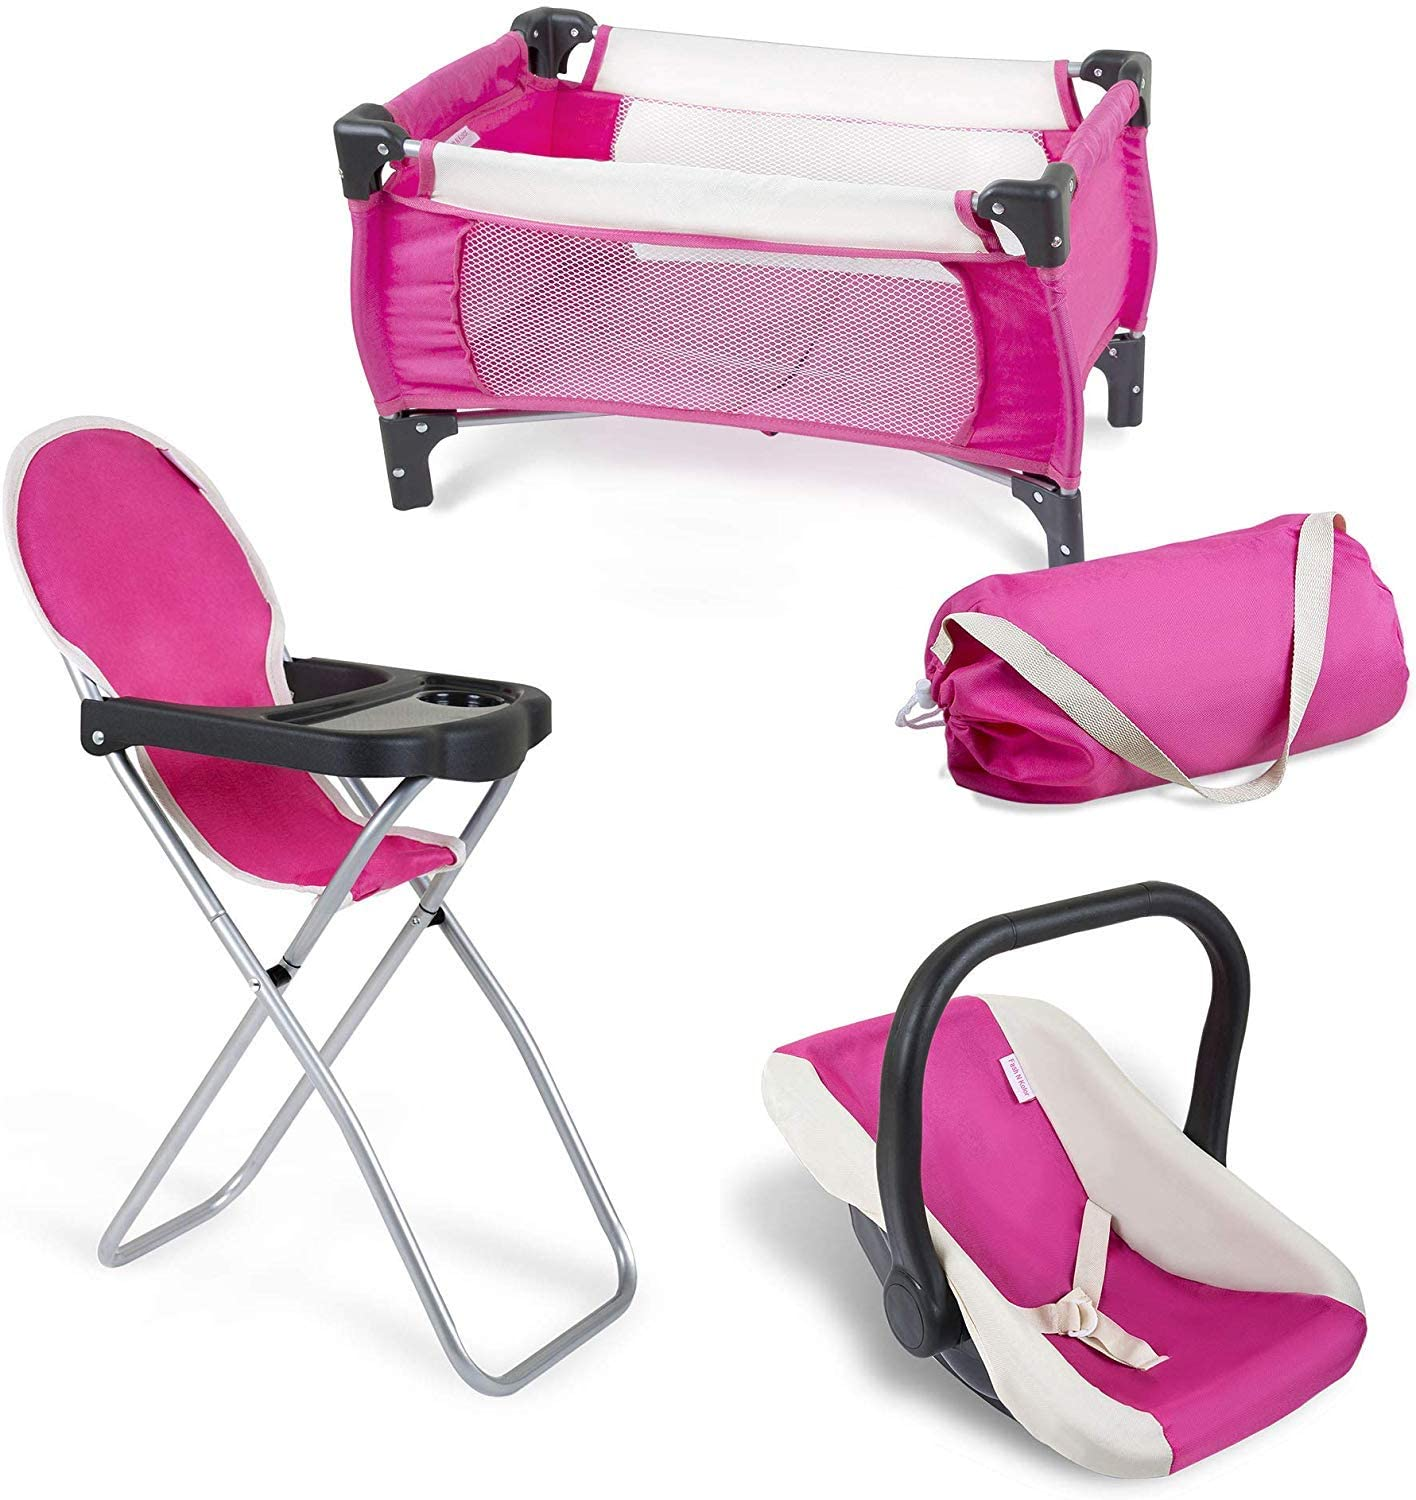 fash n kolor 3 Piece Set Pink and Cream Baby Doll Accessories, Includes 1 Pack N Play. 2.Doll High Chair. 3.Infant Seat, Fits Up to 18'' Doll (3pc Set)